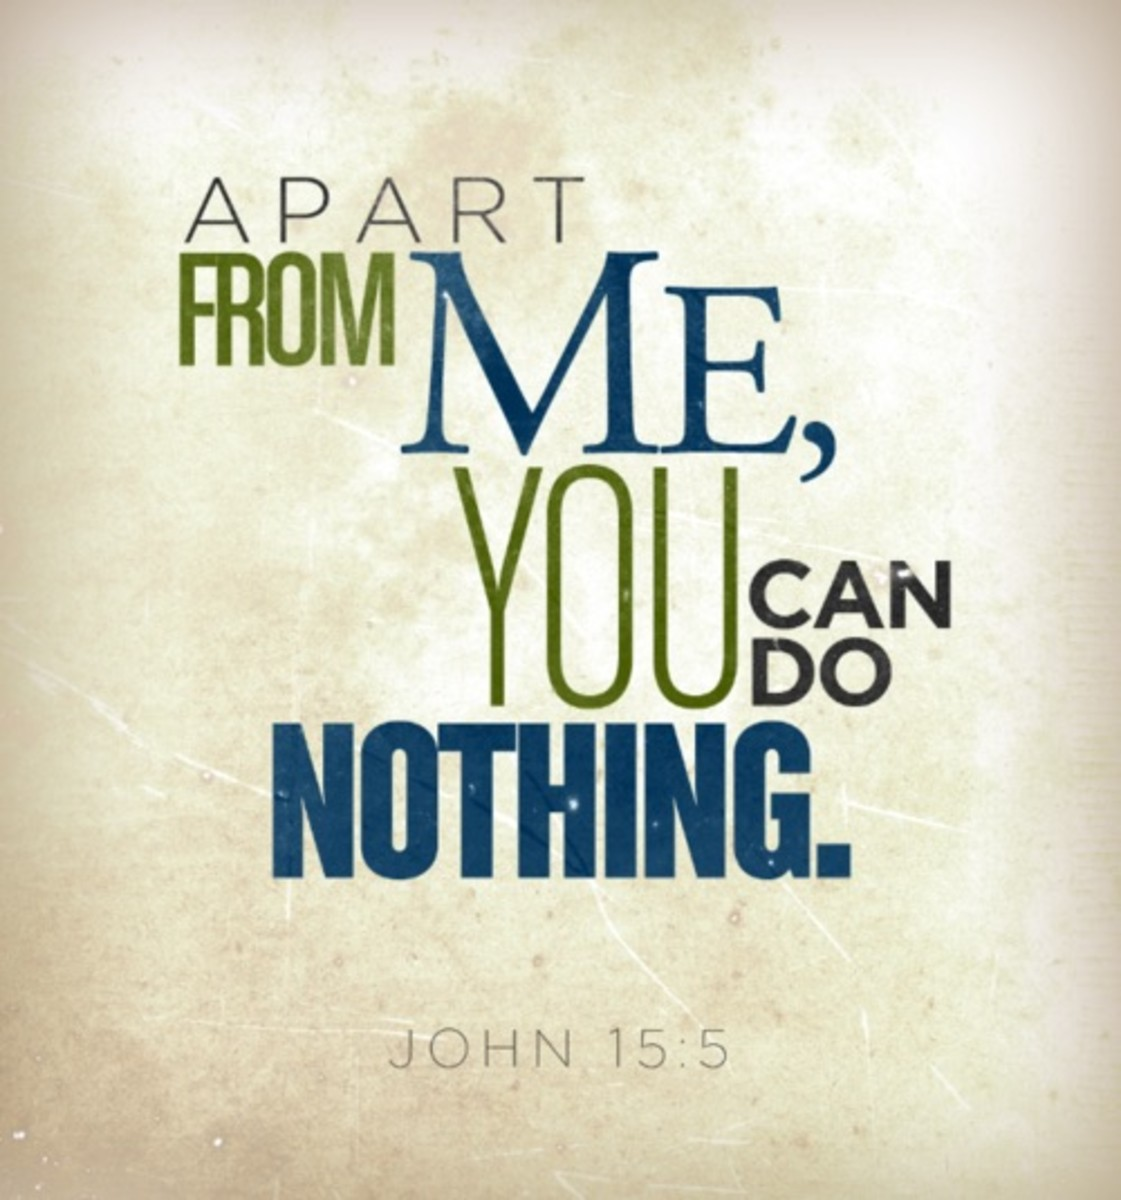 Apart From Christ